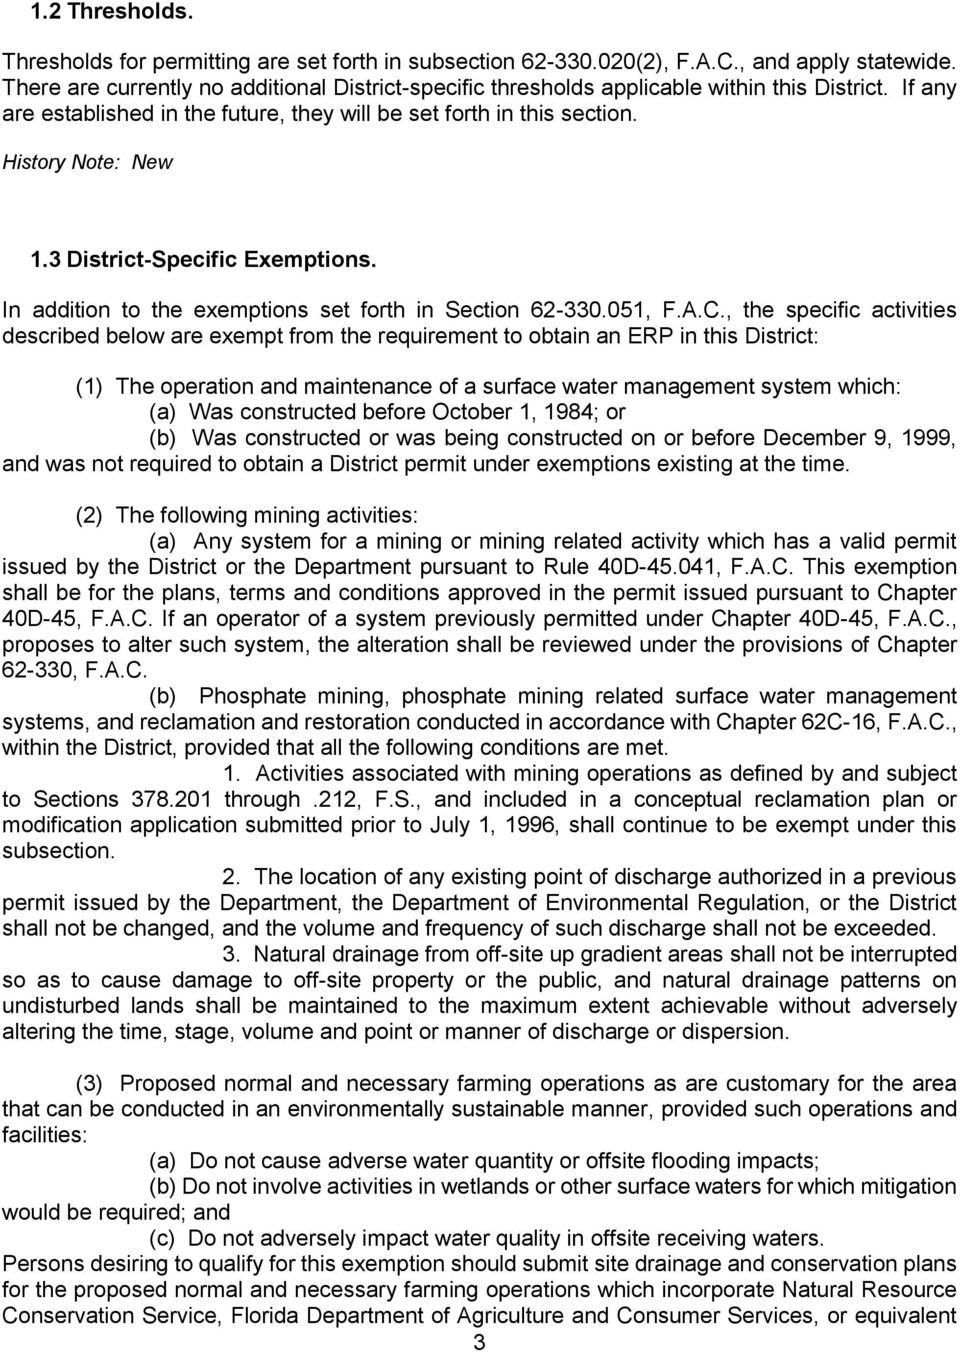 3 District-Specific Exemptions. In addition to the exemptions set forth in Section 62-330.051, F.A.C.